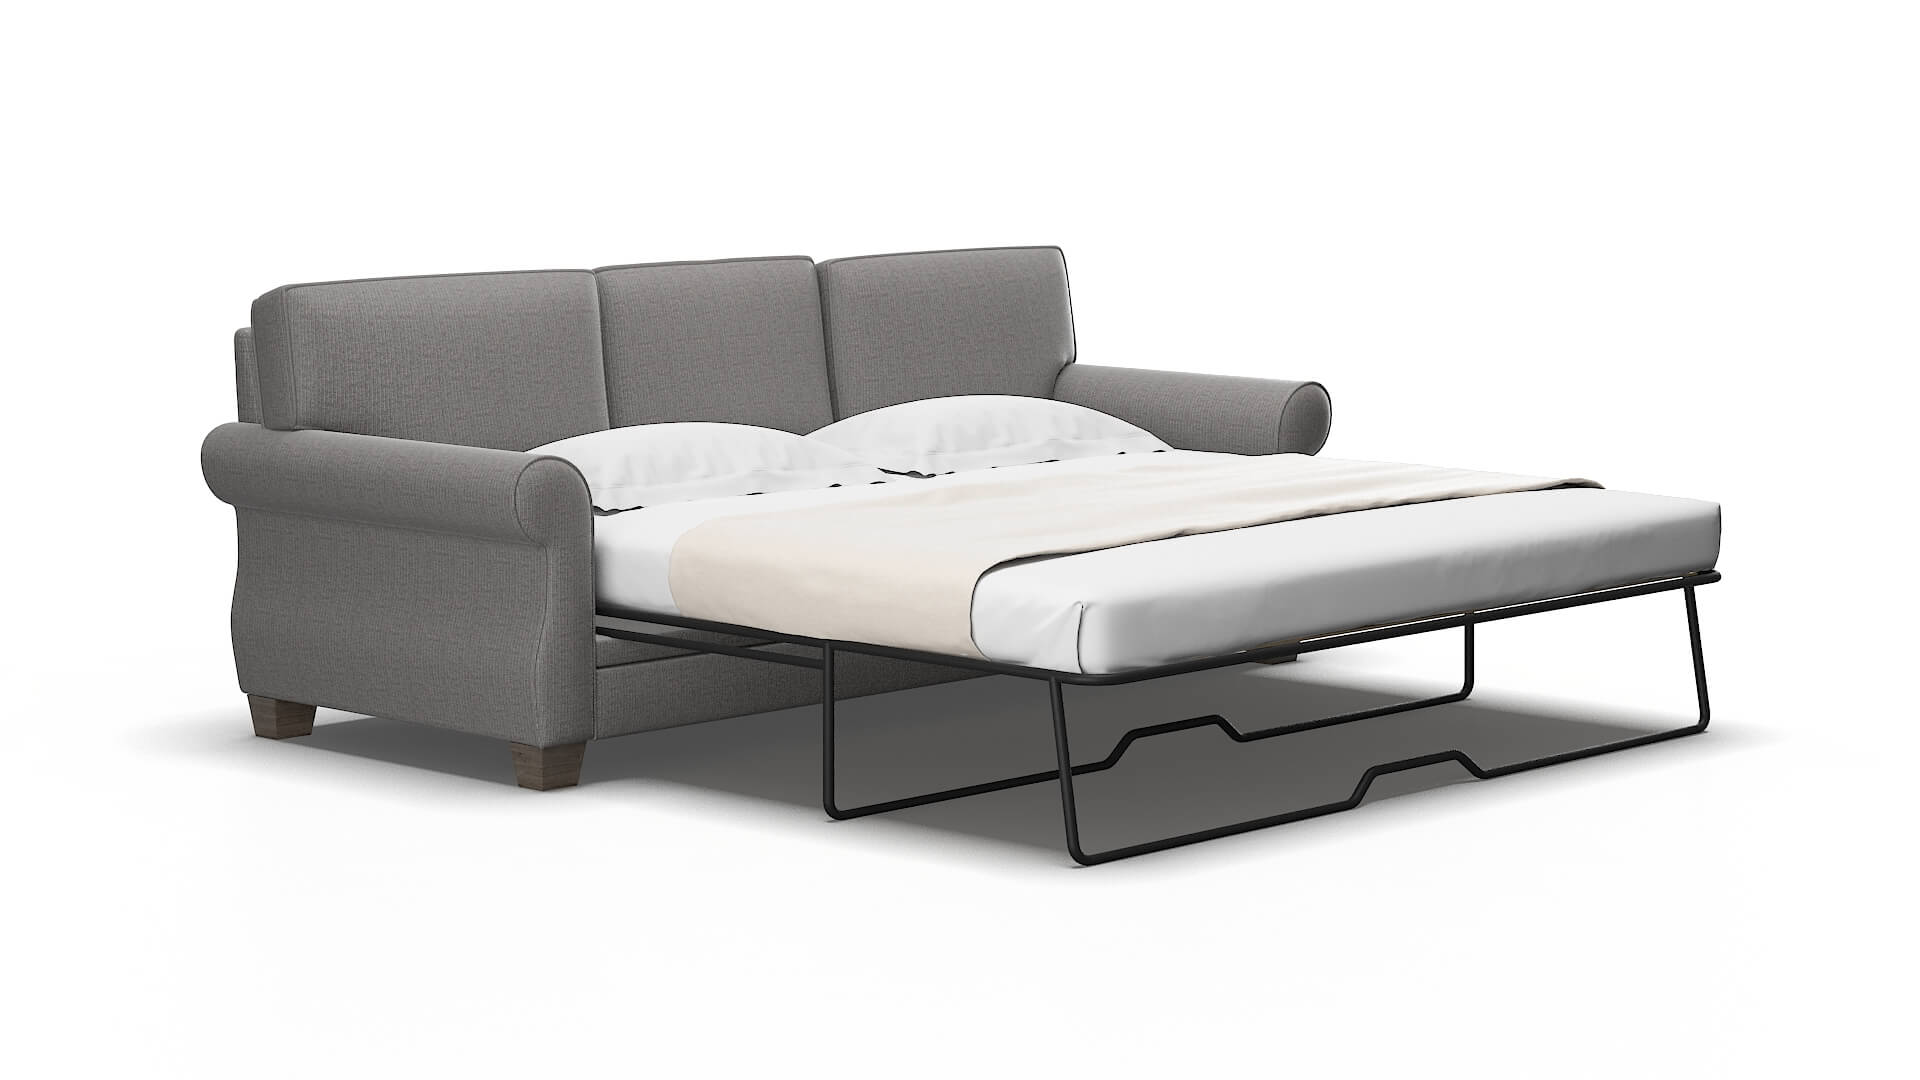 Awe Inspiring Rome Parker Graphite Sofa Sleeper Ocoug Best Dining Table And Chair Ideas Images Ocougorg